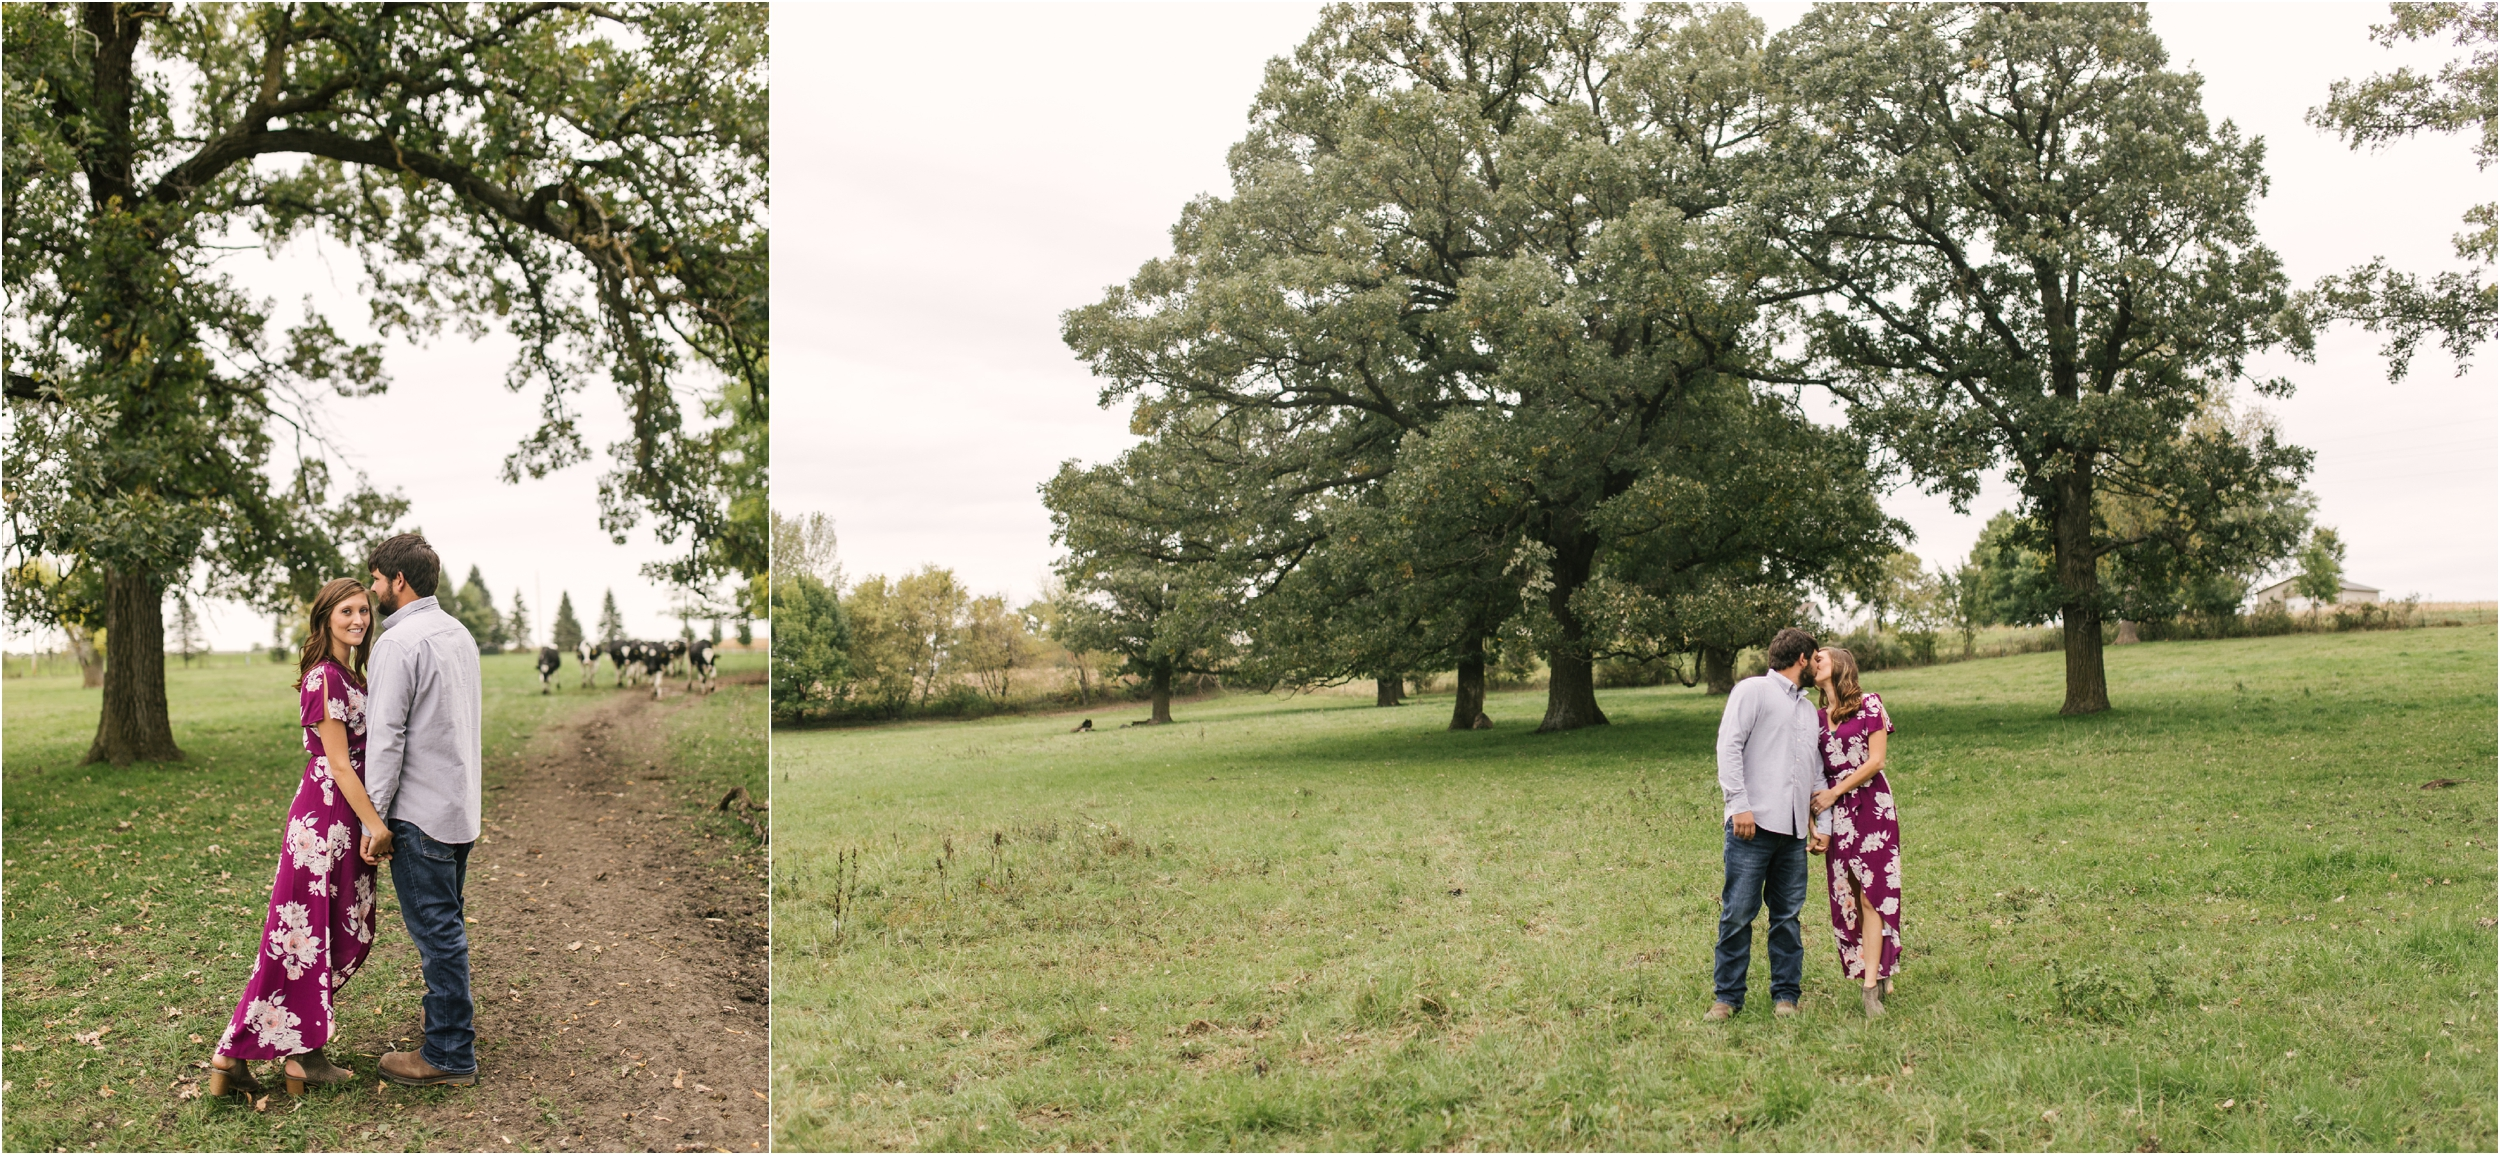 Countryside Engagement Photos_ Minnesota Wedding Photographer_Stephanie Lynn Photography_0059.jpg